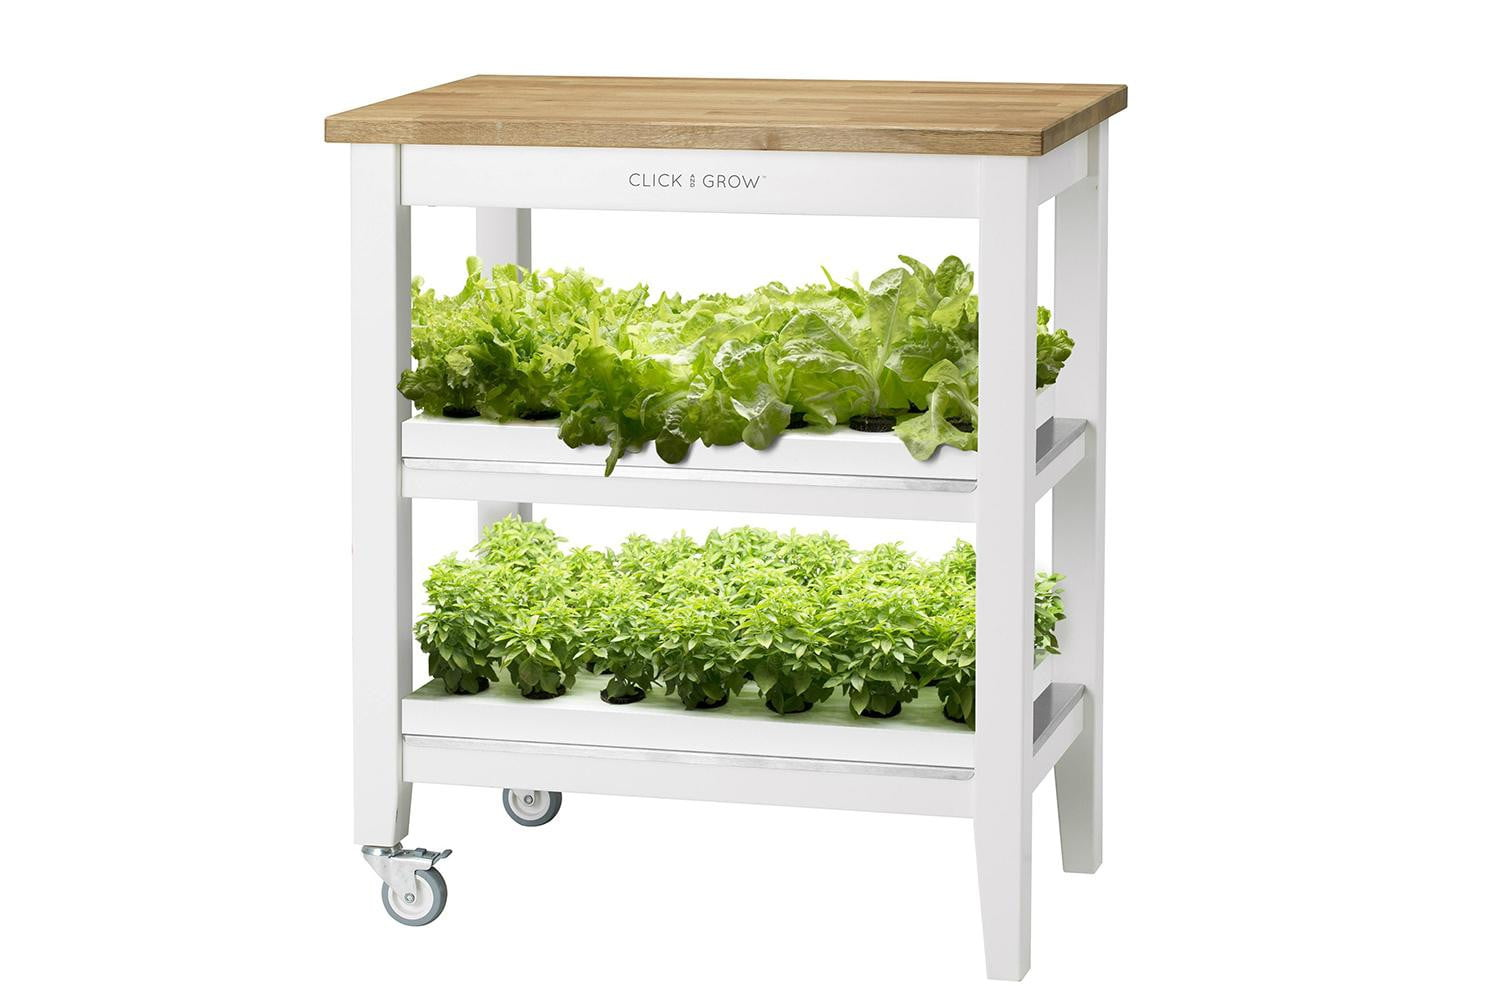 Click & Grow's Smart Mini Farm Lets You Grow Food Indoors | Digital ...